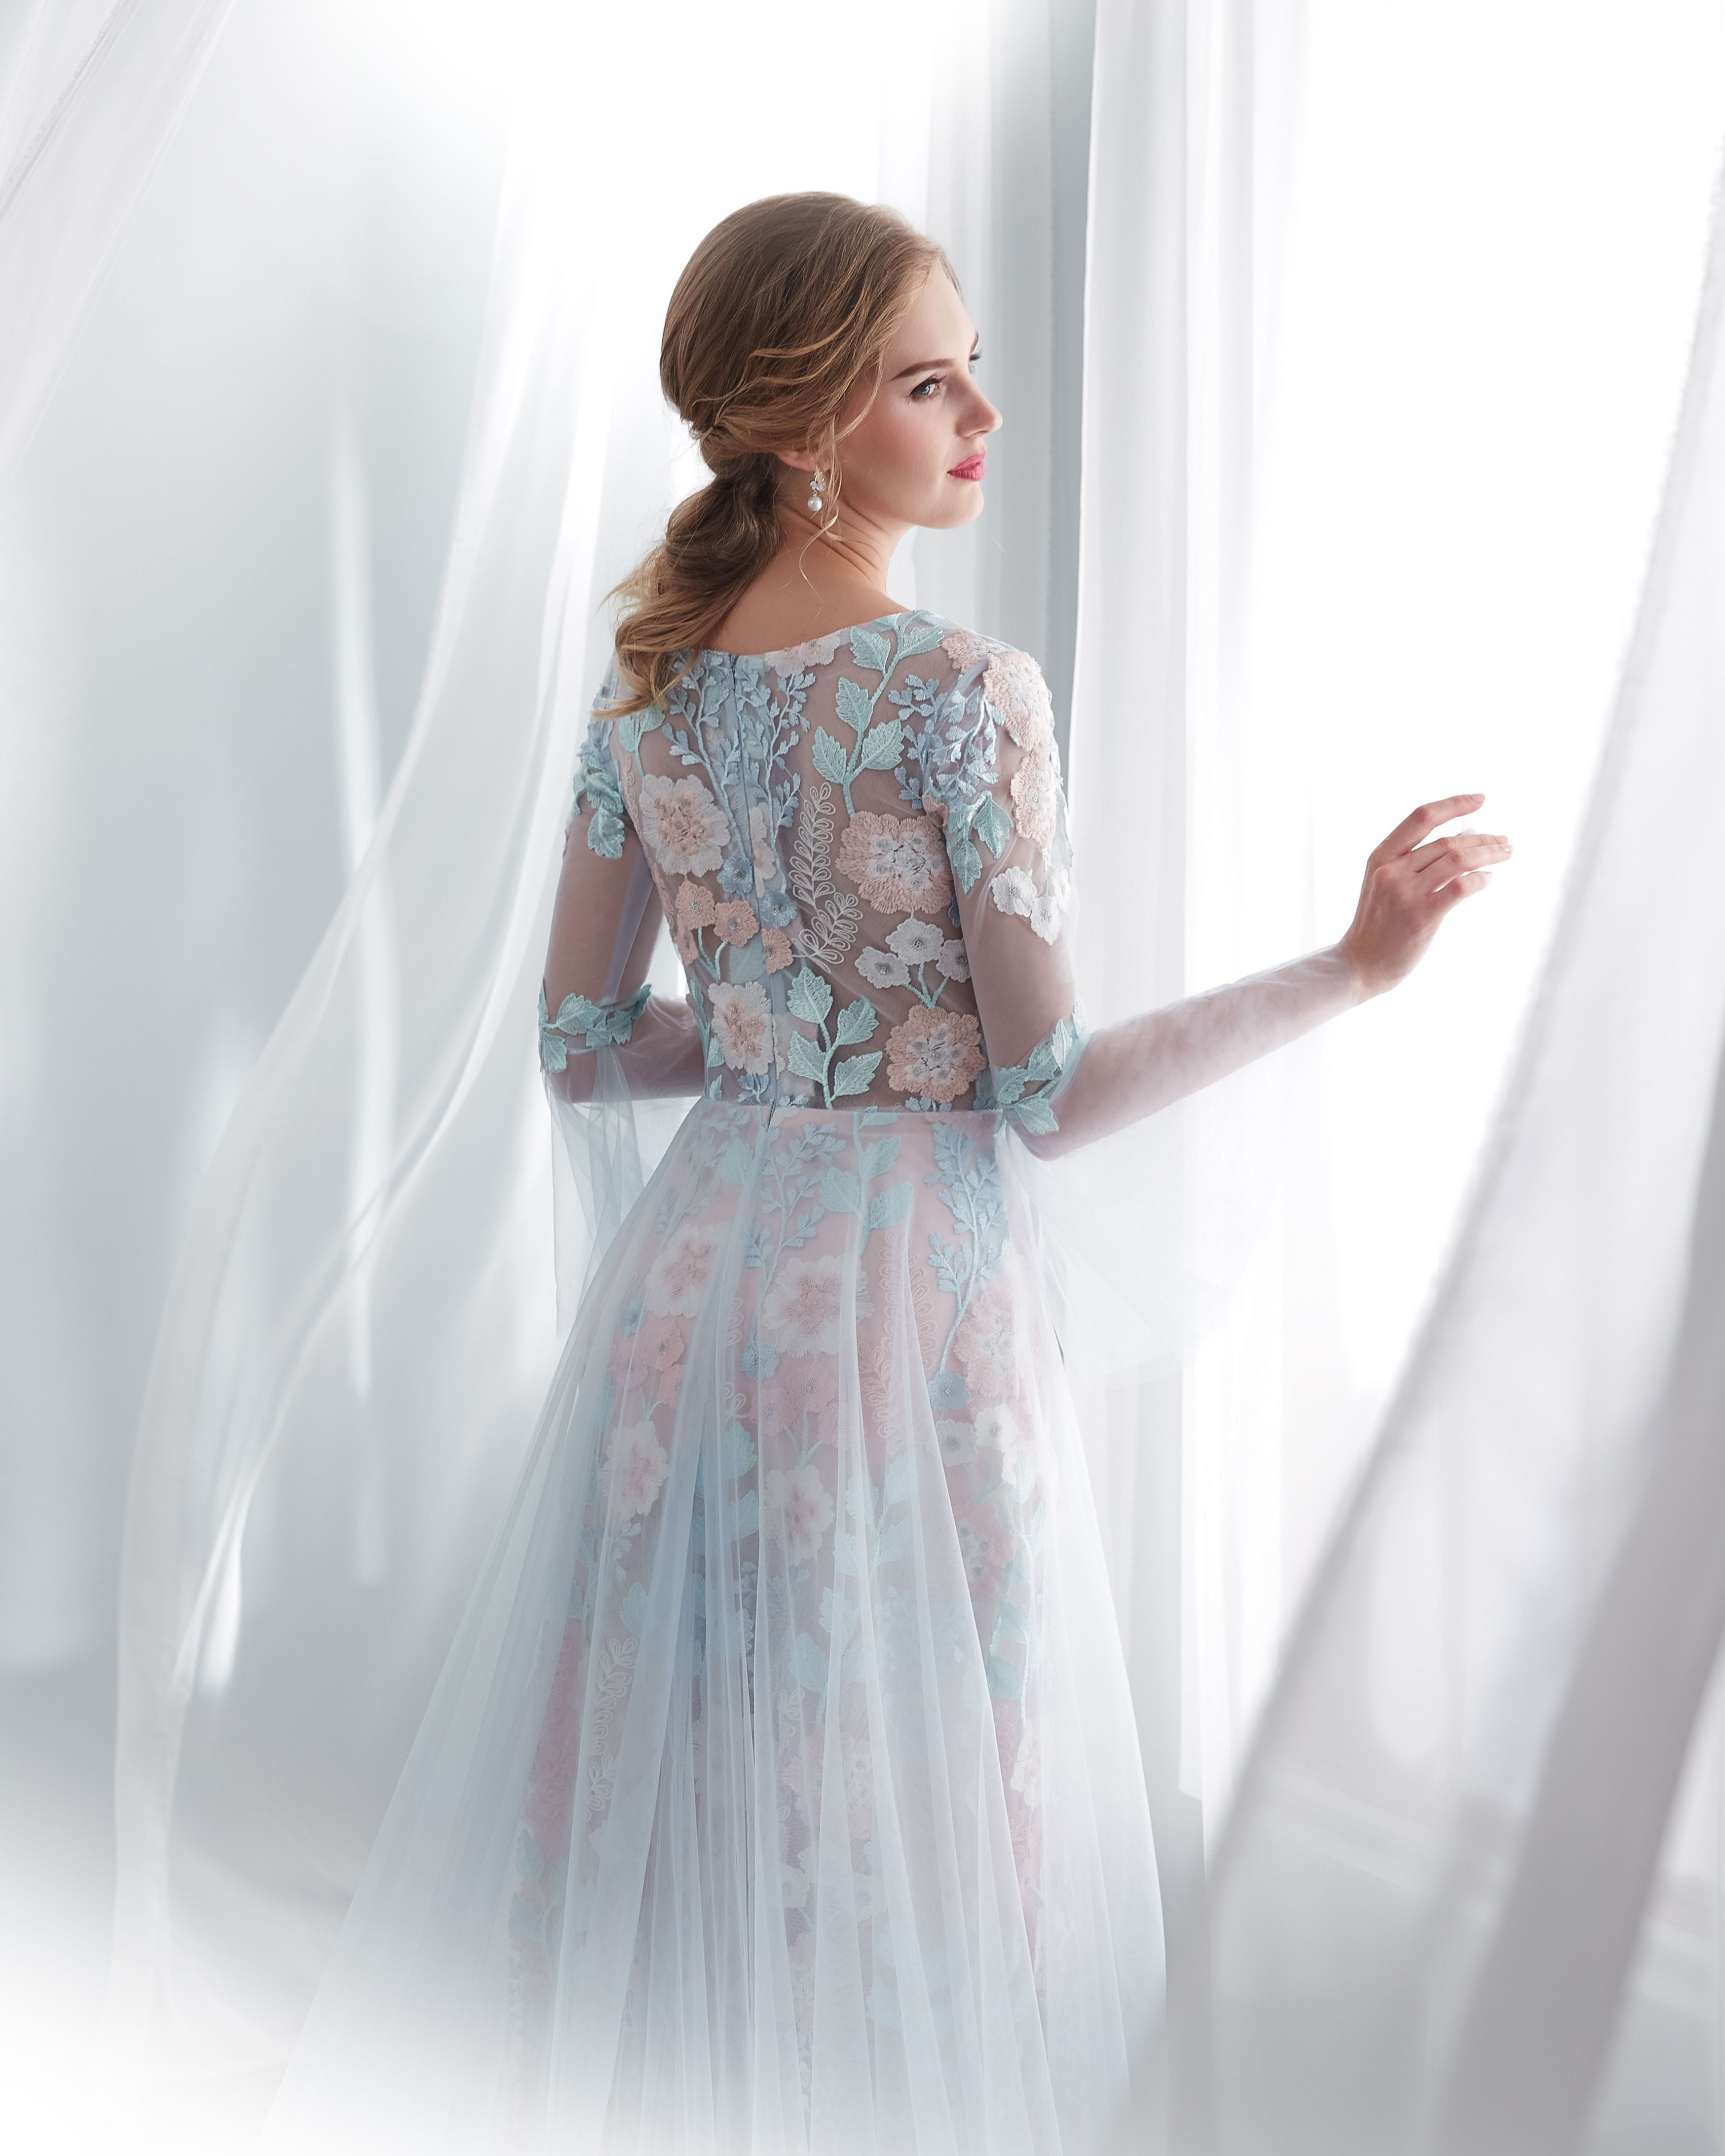 Bell sleeve light blue tulle long wedding dress with train